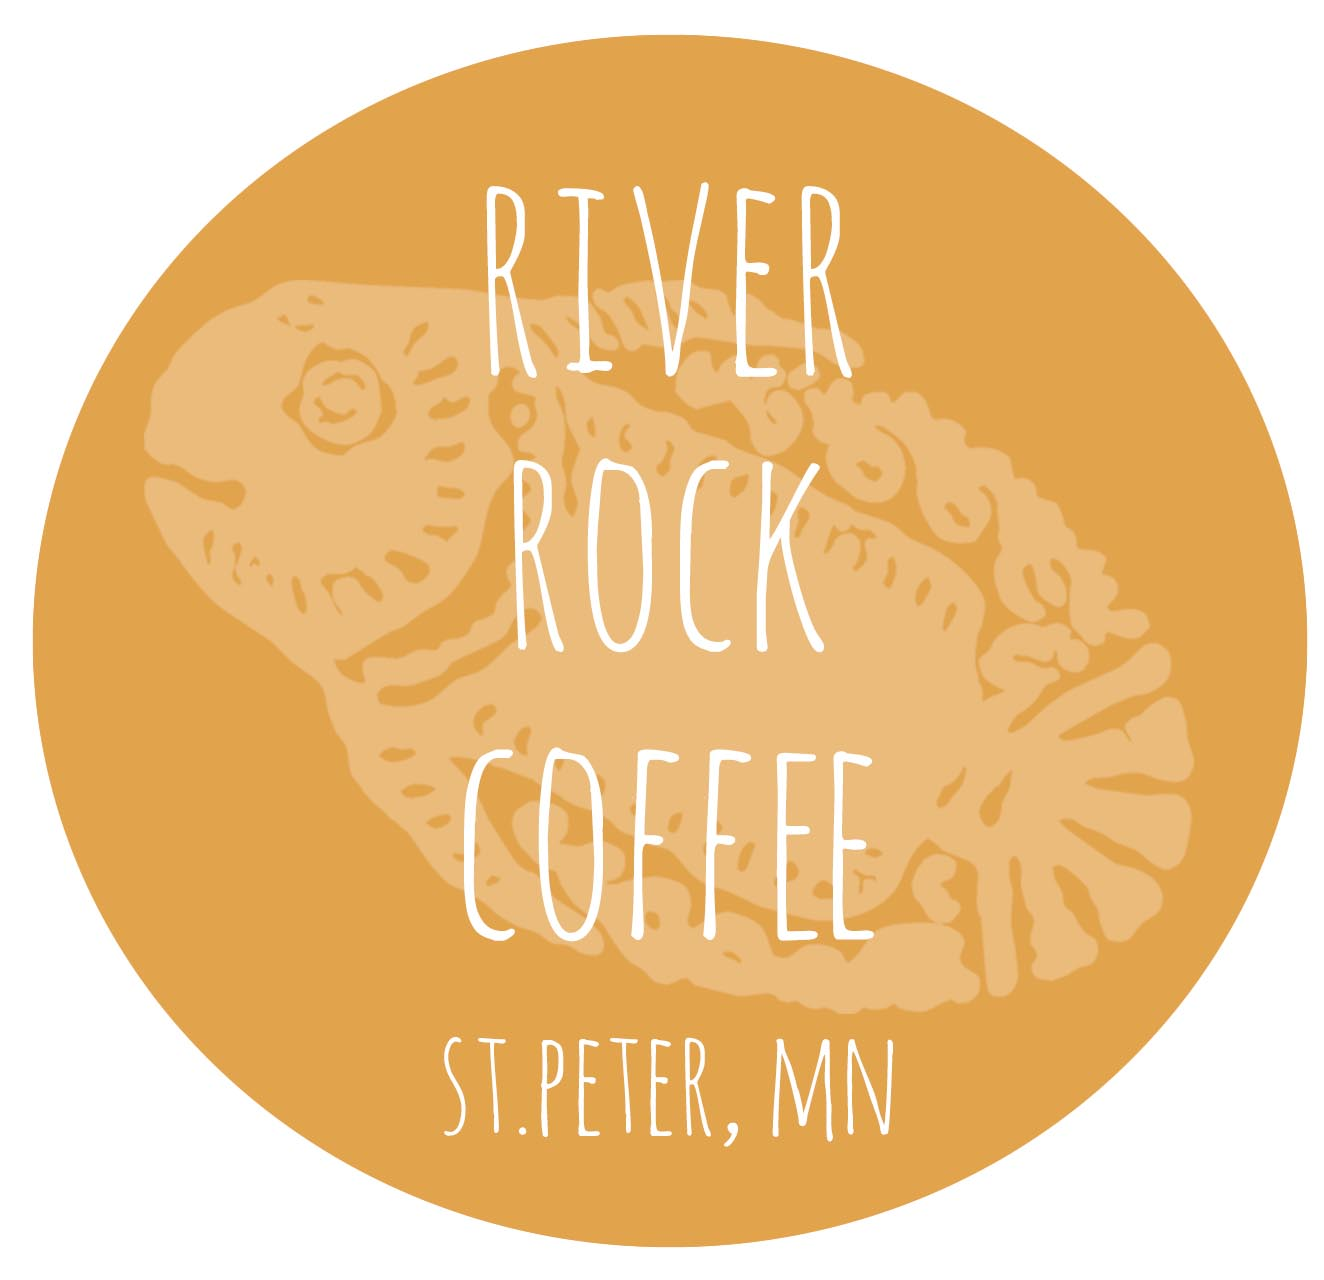 RIVER ROCK COFFEE